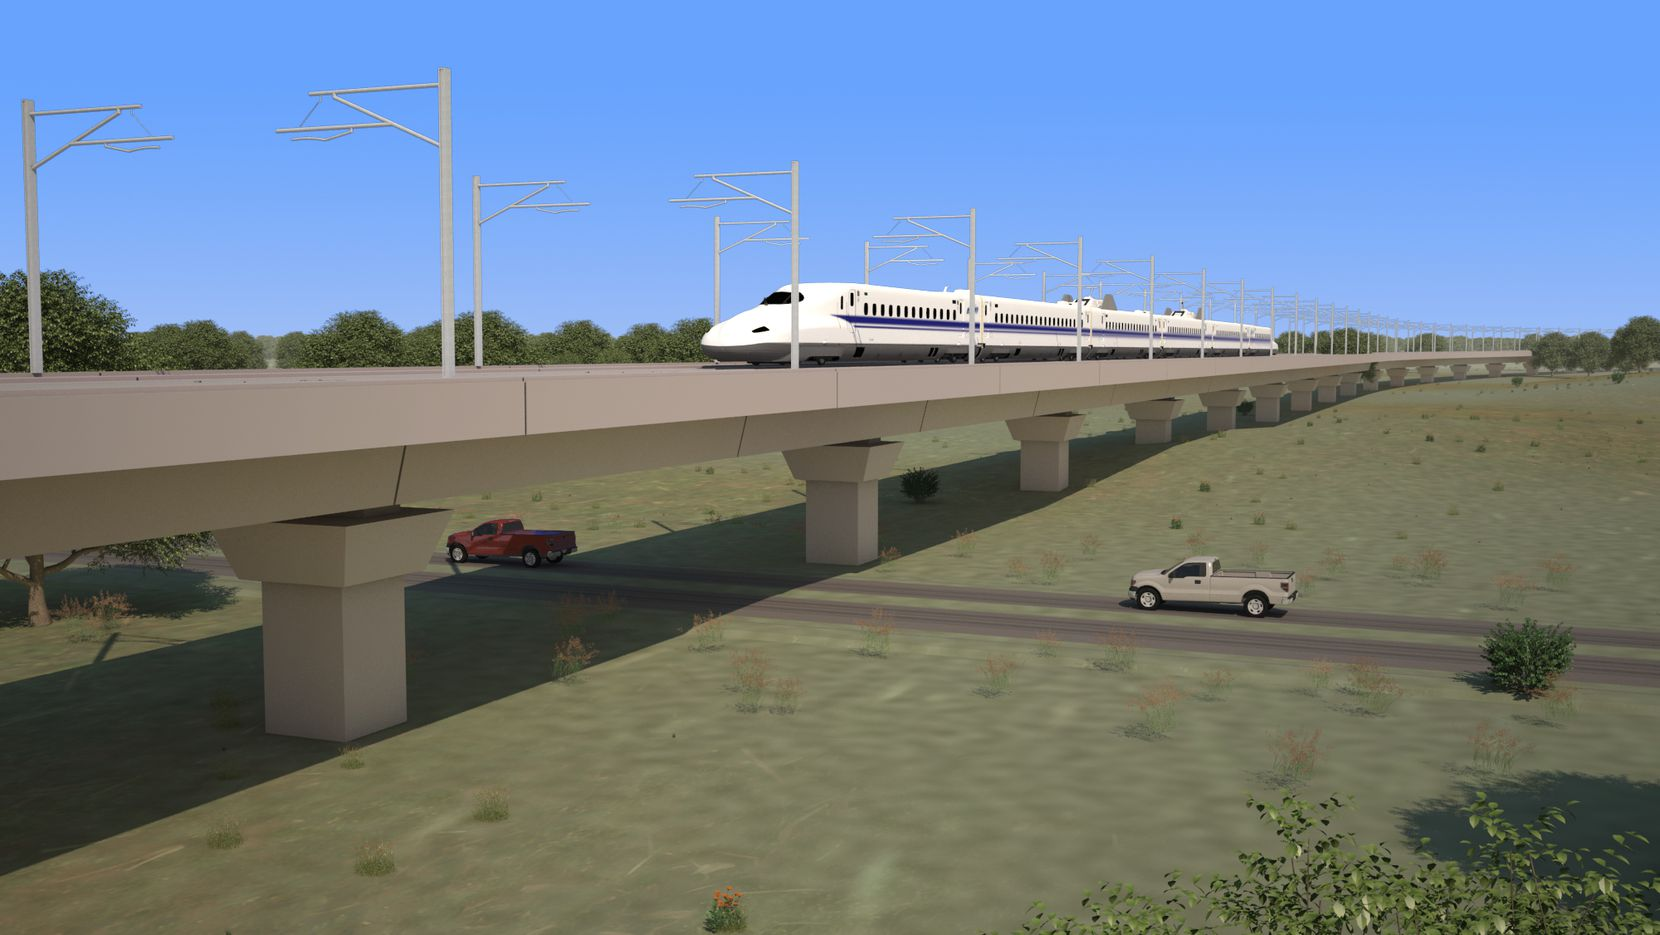 Portions of the Texas high-speed rail could be above ground in areas where tracks can't run on the ground.